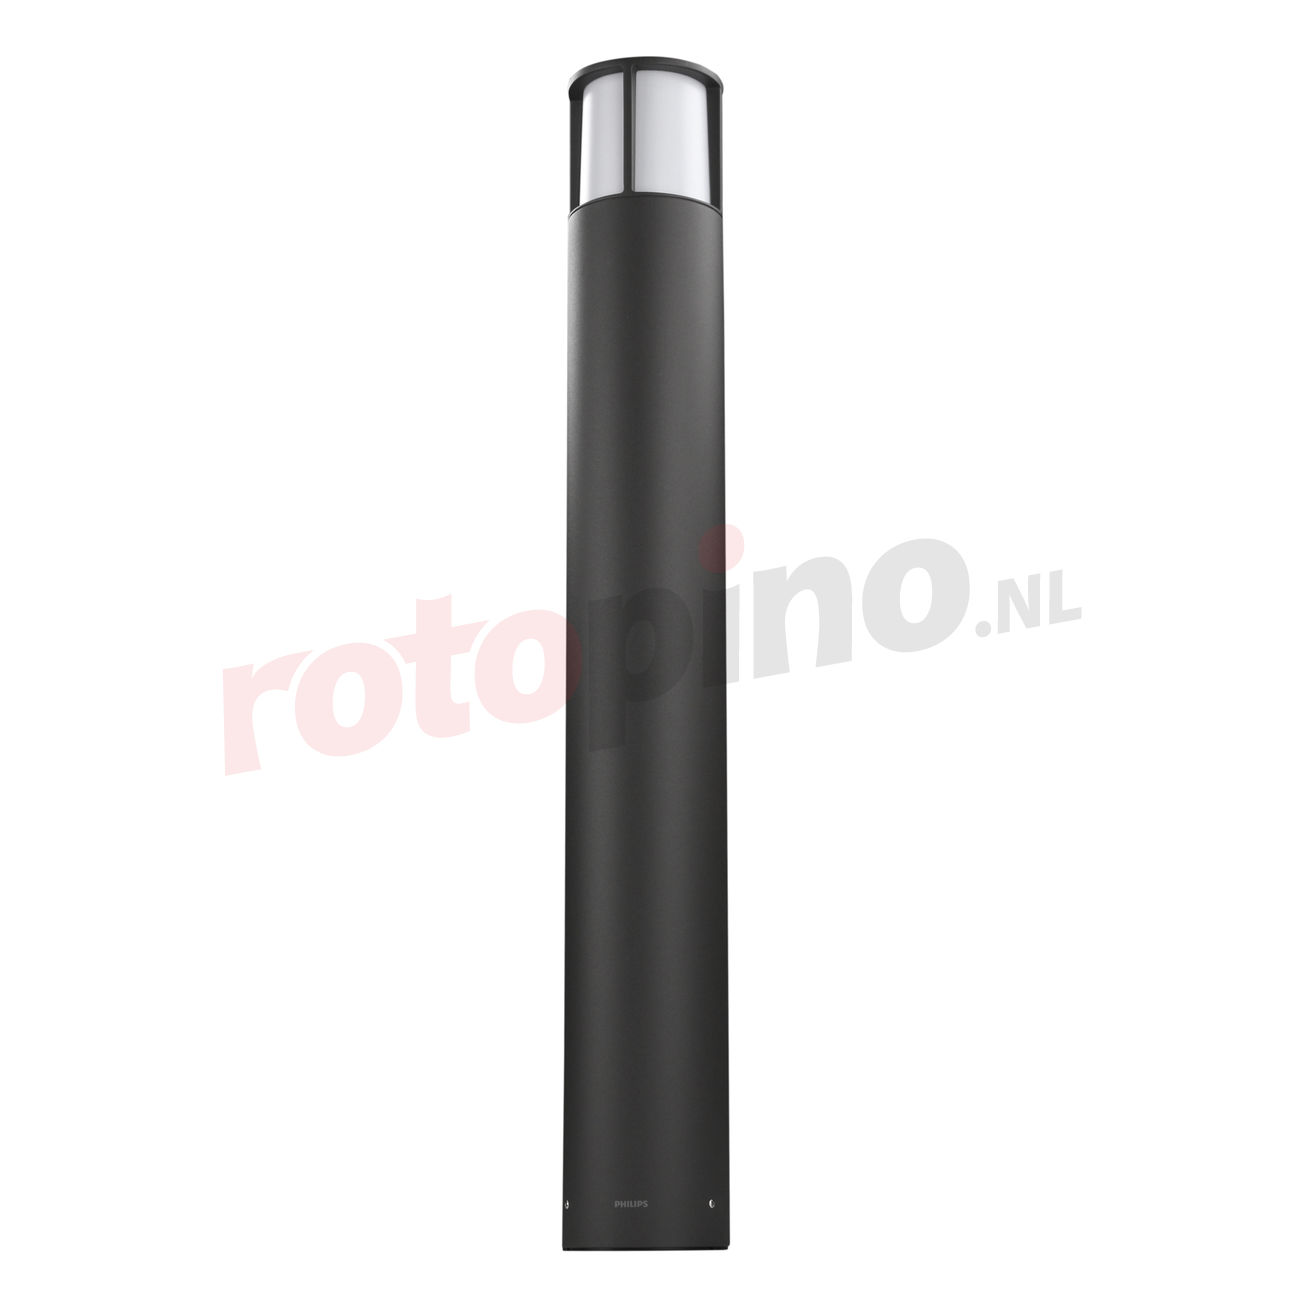 Philips Buitenlamp Staande Buitenlamp Led Stock Philips 1646793p3